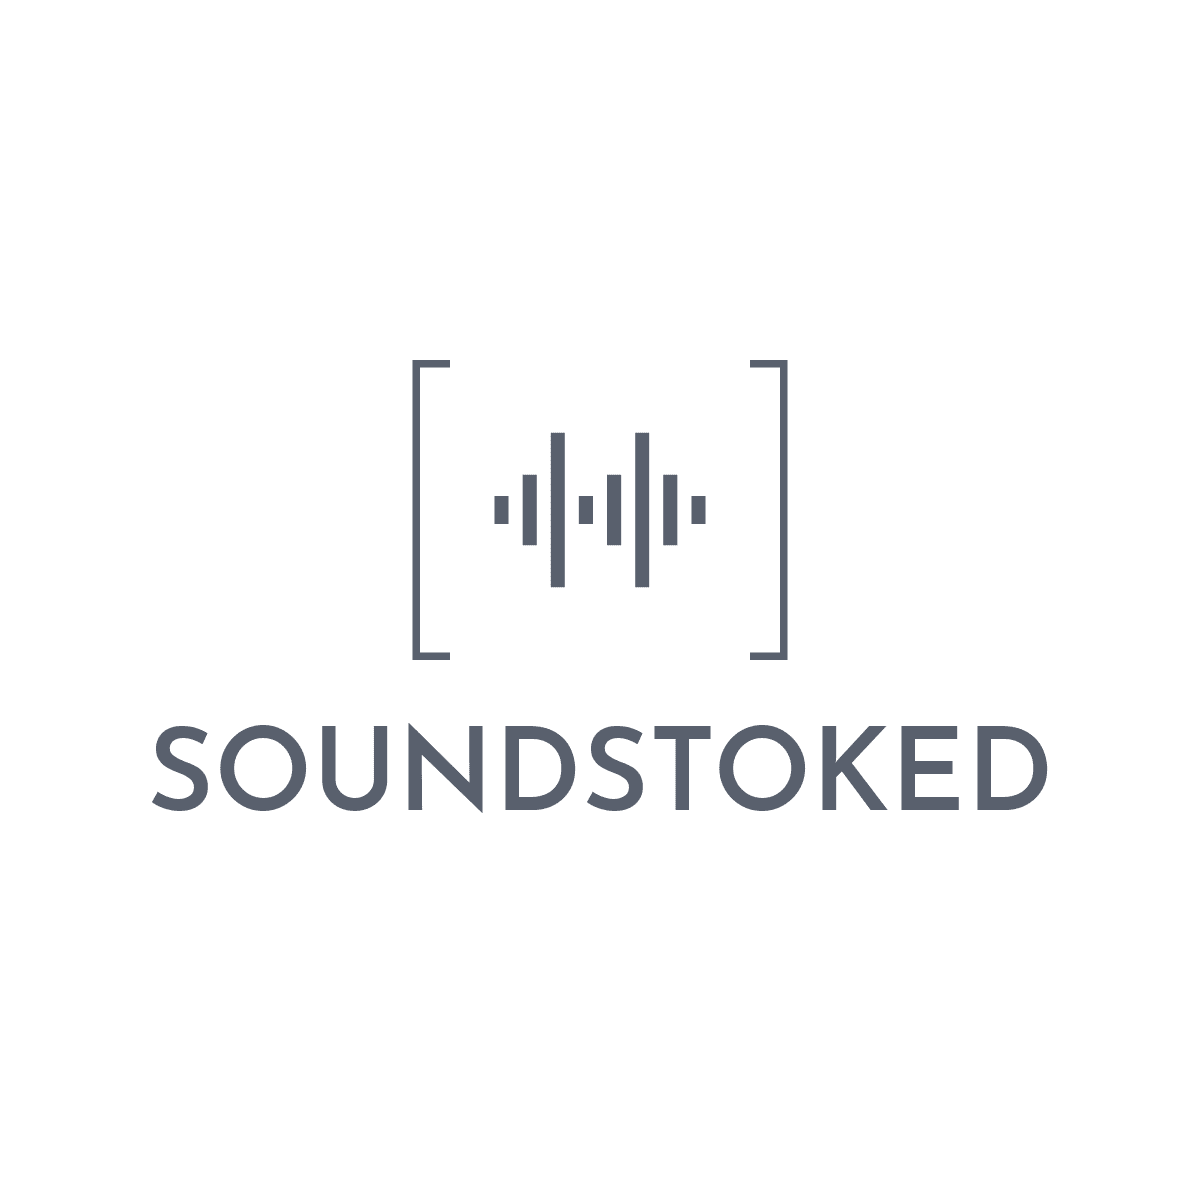 Soundstoked is a company selling waterproof and waterresistent bluetooth speaker, speakers to active people who loike hanging out at the beach and in nature.